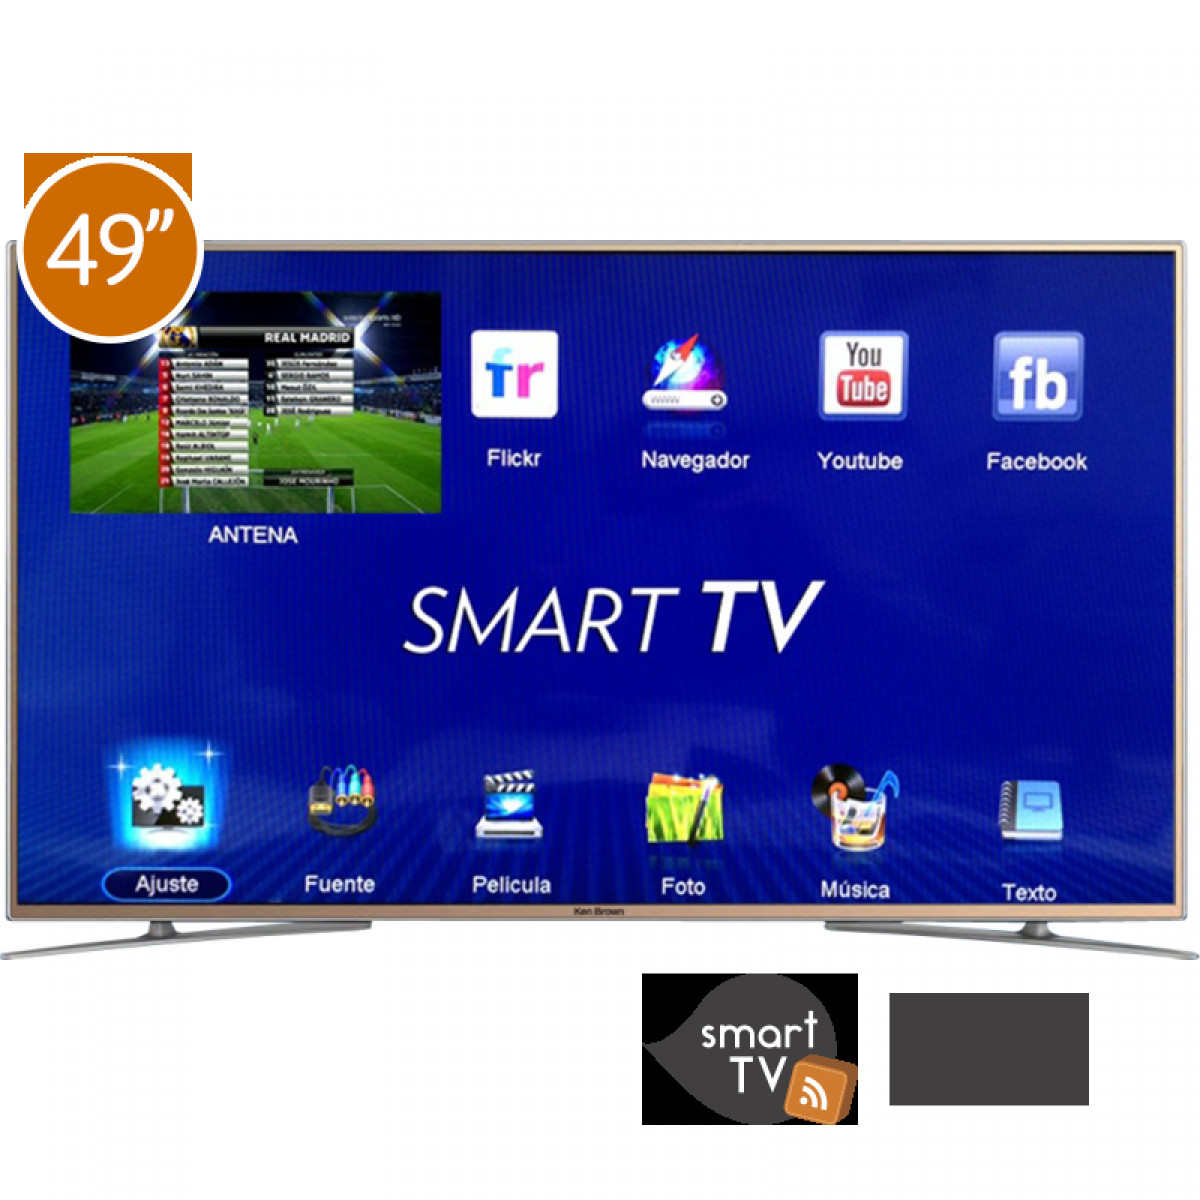 Tv Con Smart Tv Lujo Tv Smart Smart Tv 49 Ken Brown Kb2280 Fhd En Cetrogar Of 40  Gran Tv Con Smart Tv